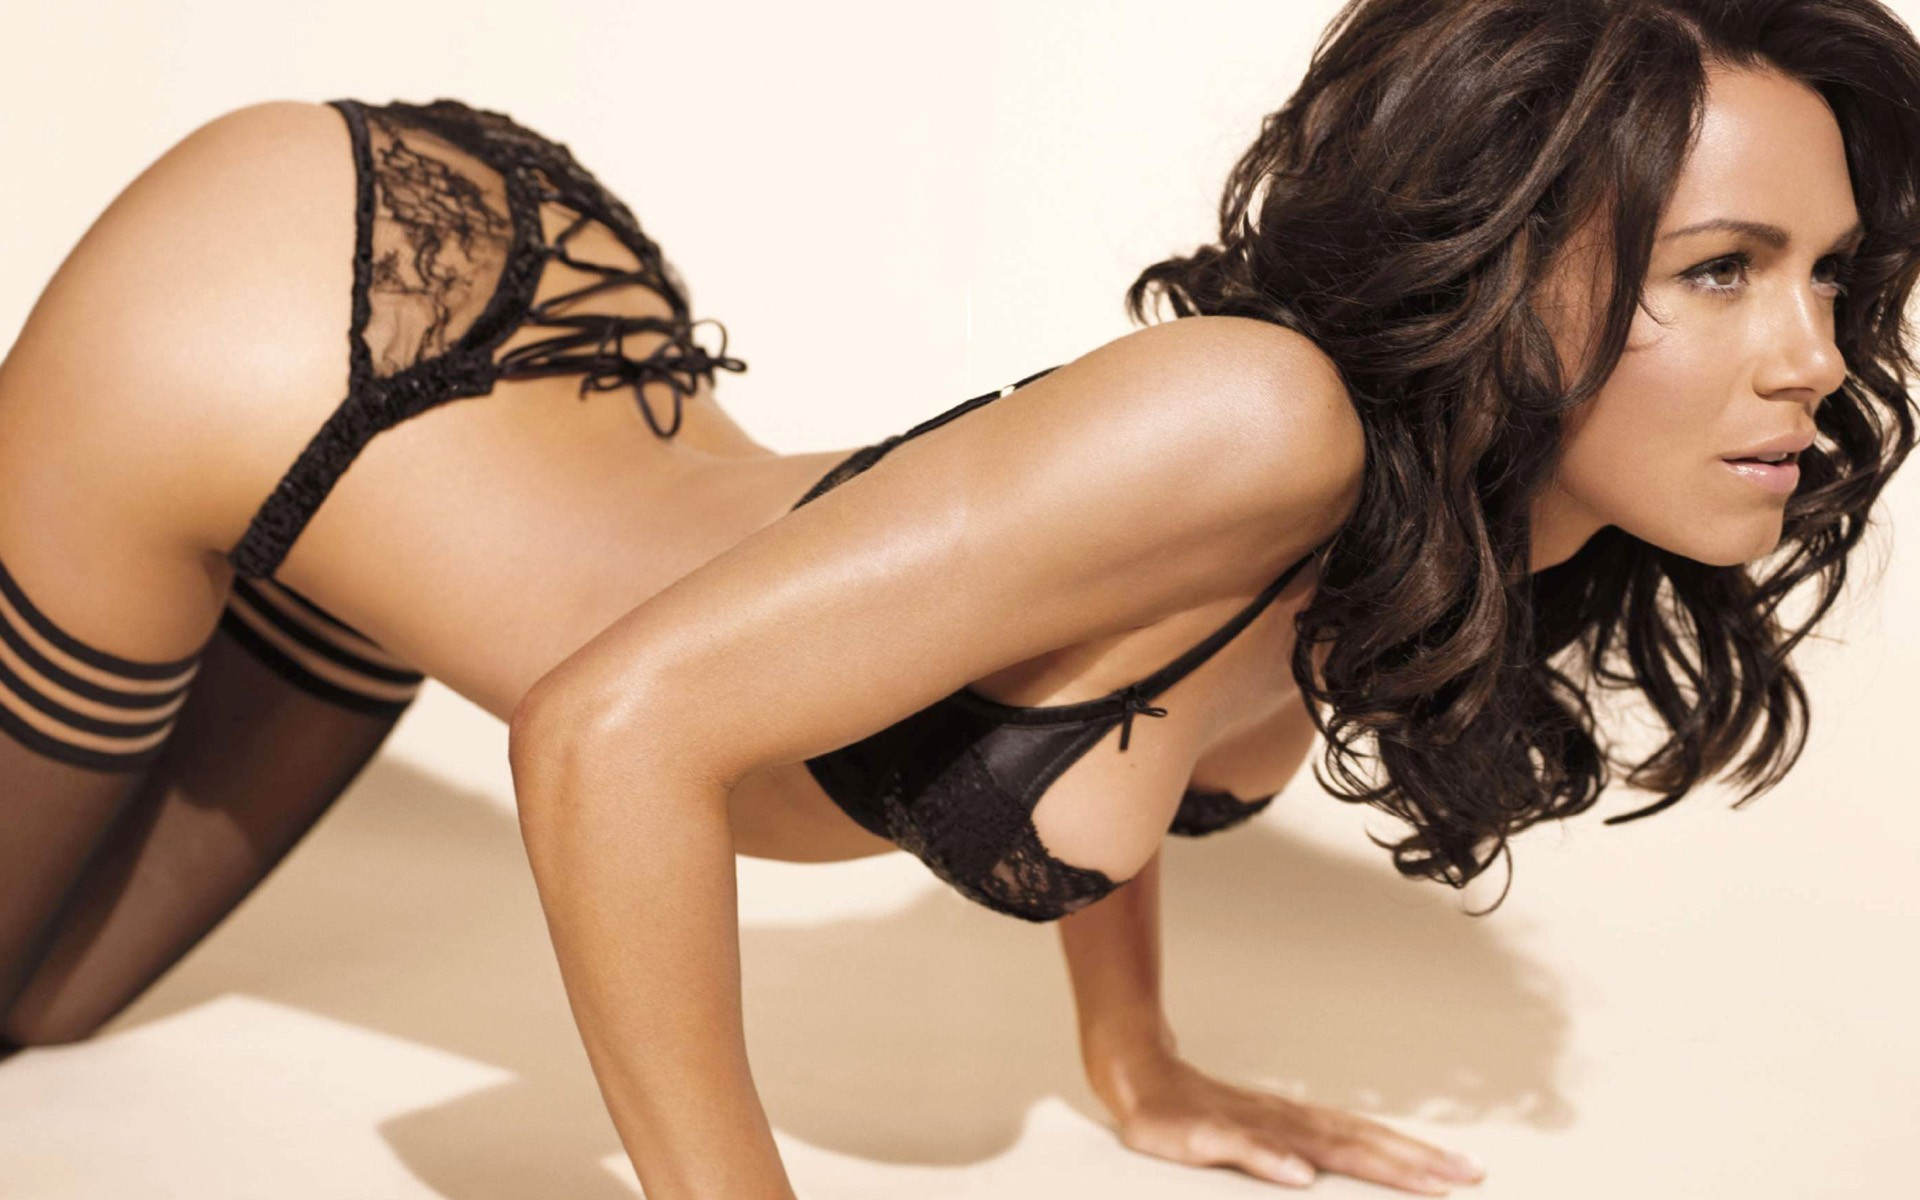 woman stockings lingerie brunettes bra HD Wallpaper